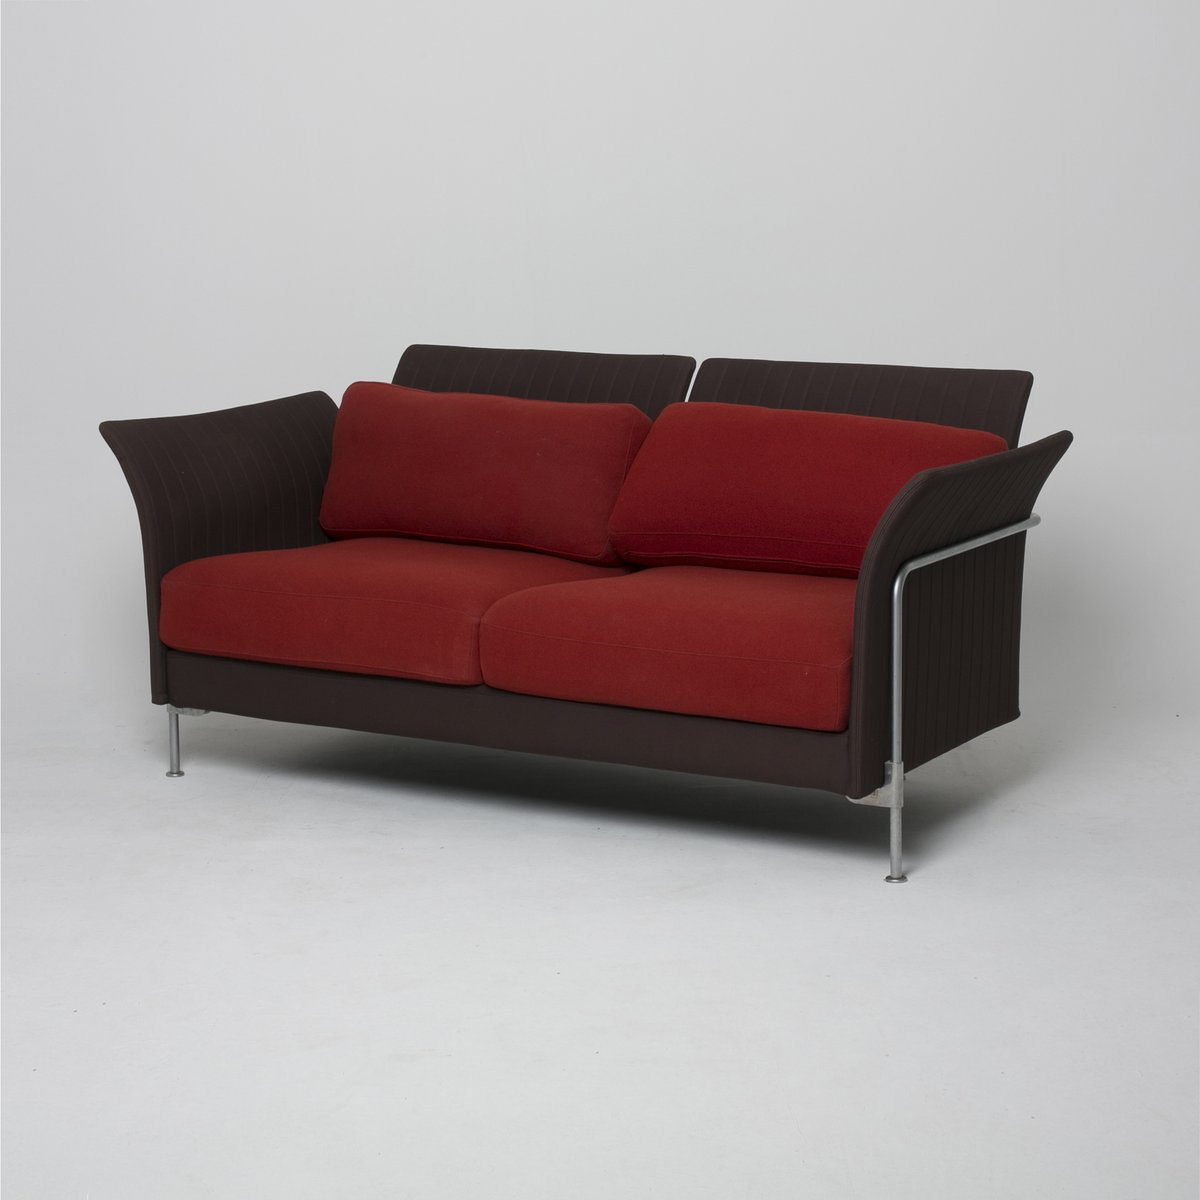 canap sofa by ronan erwan bouroullec for vitra for sale at pamono. Black Bedroom Furniture Sets. Home Design Ideas